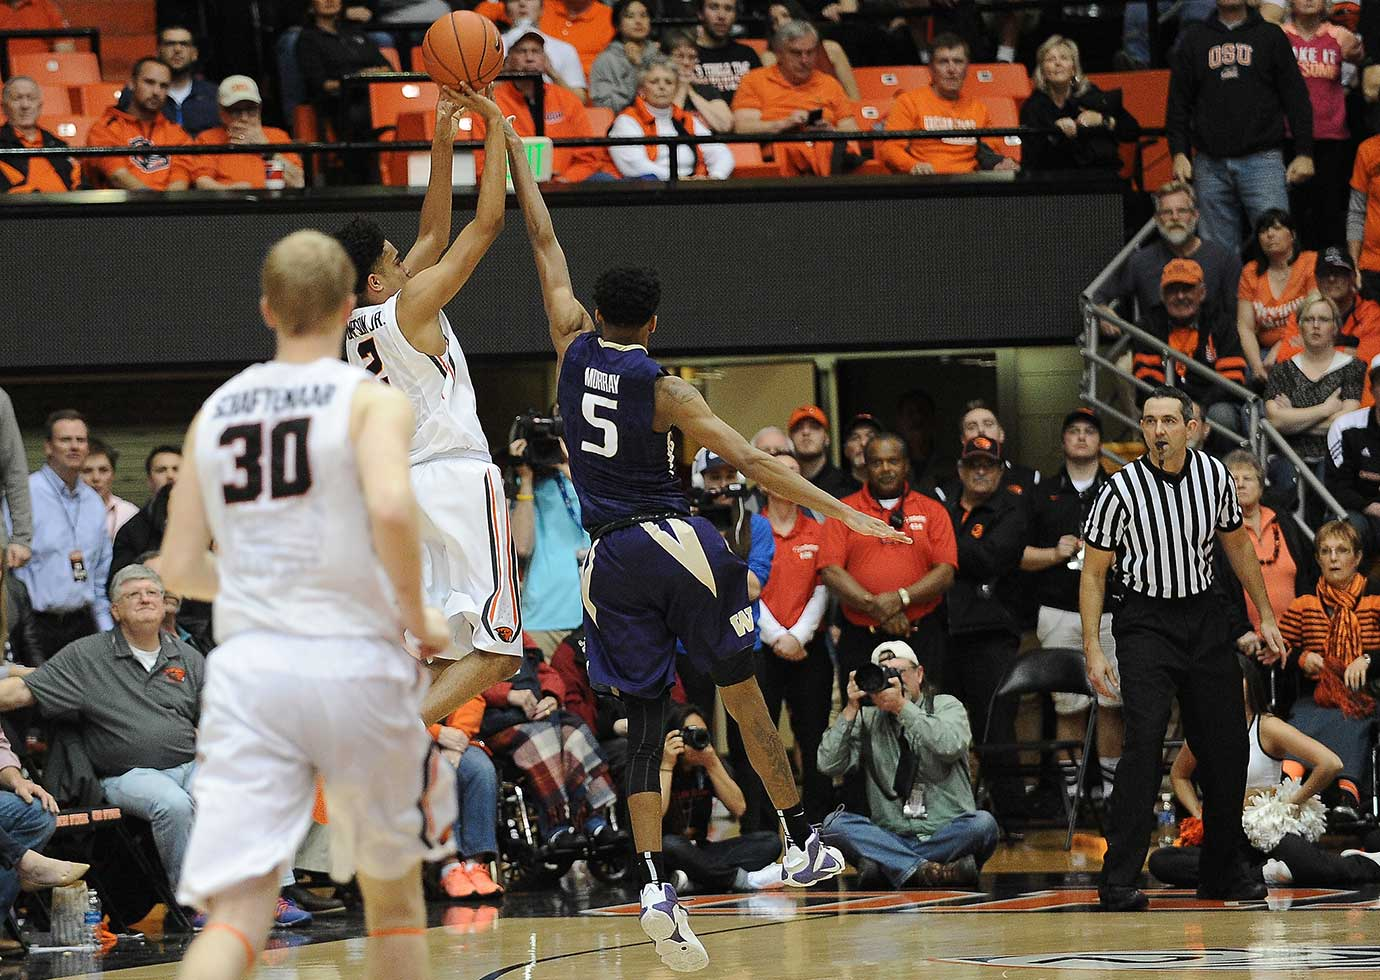 Oregon State freshman Stephen Thompson Jr. shoots the buzzer-beating three over Washington freshman Dejounte Murray.